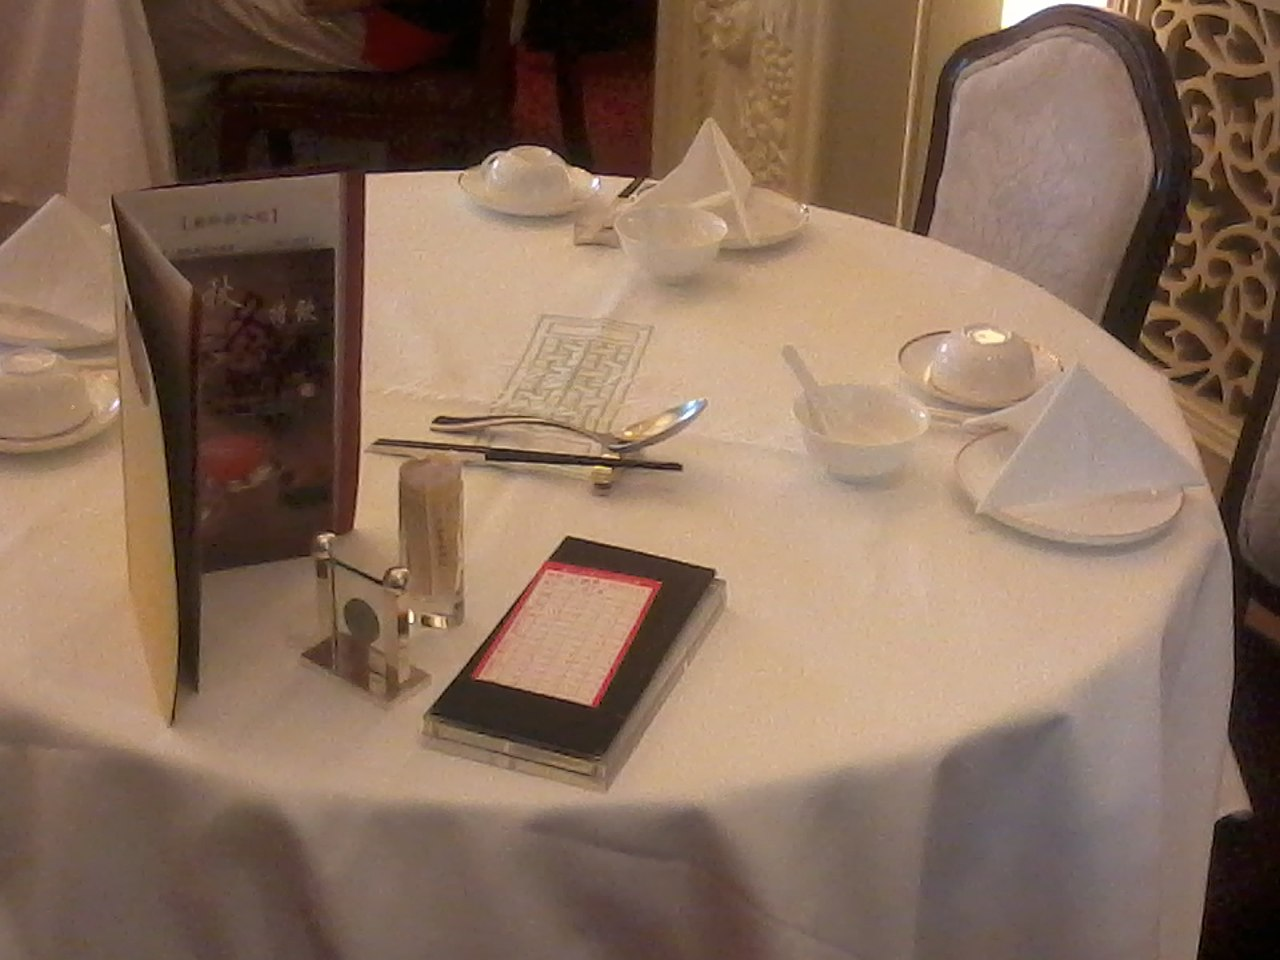 Restaurant table setting for two - File Hk Central City Hall Lower Block Chinese Restaurant Table Setting Oct 2012 Jpg